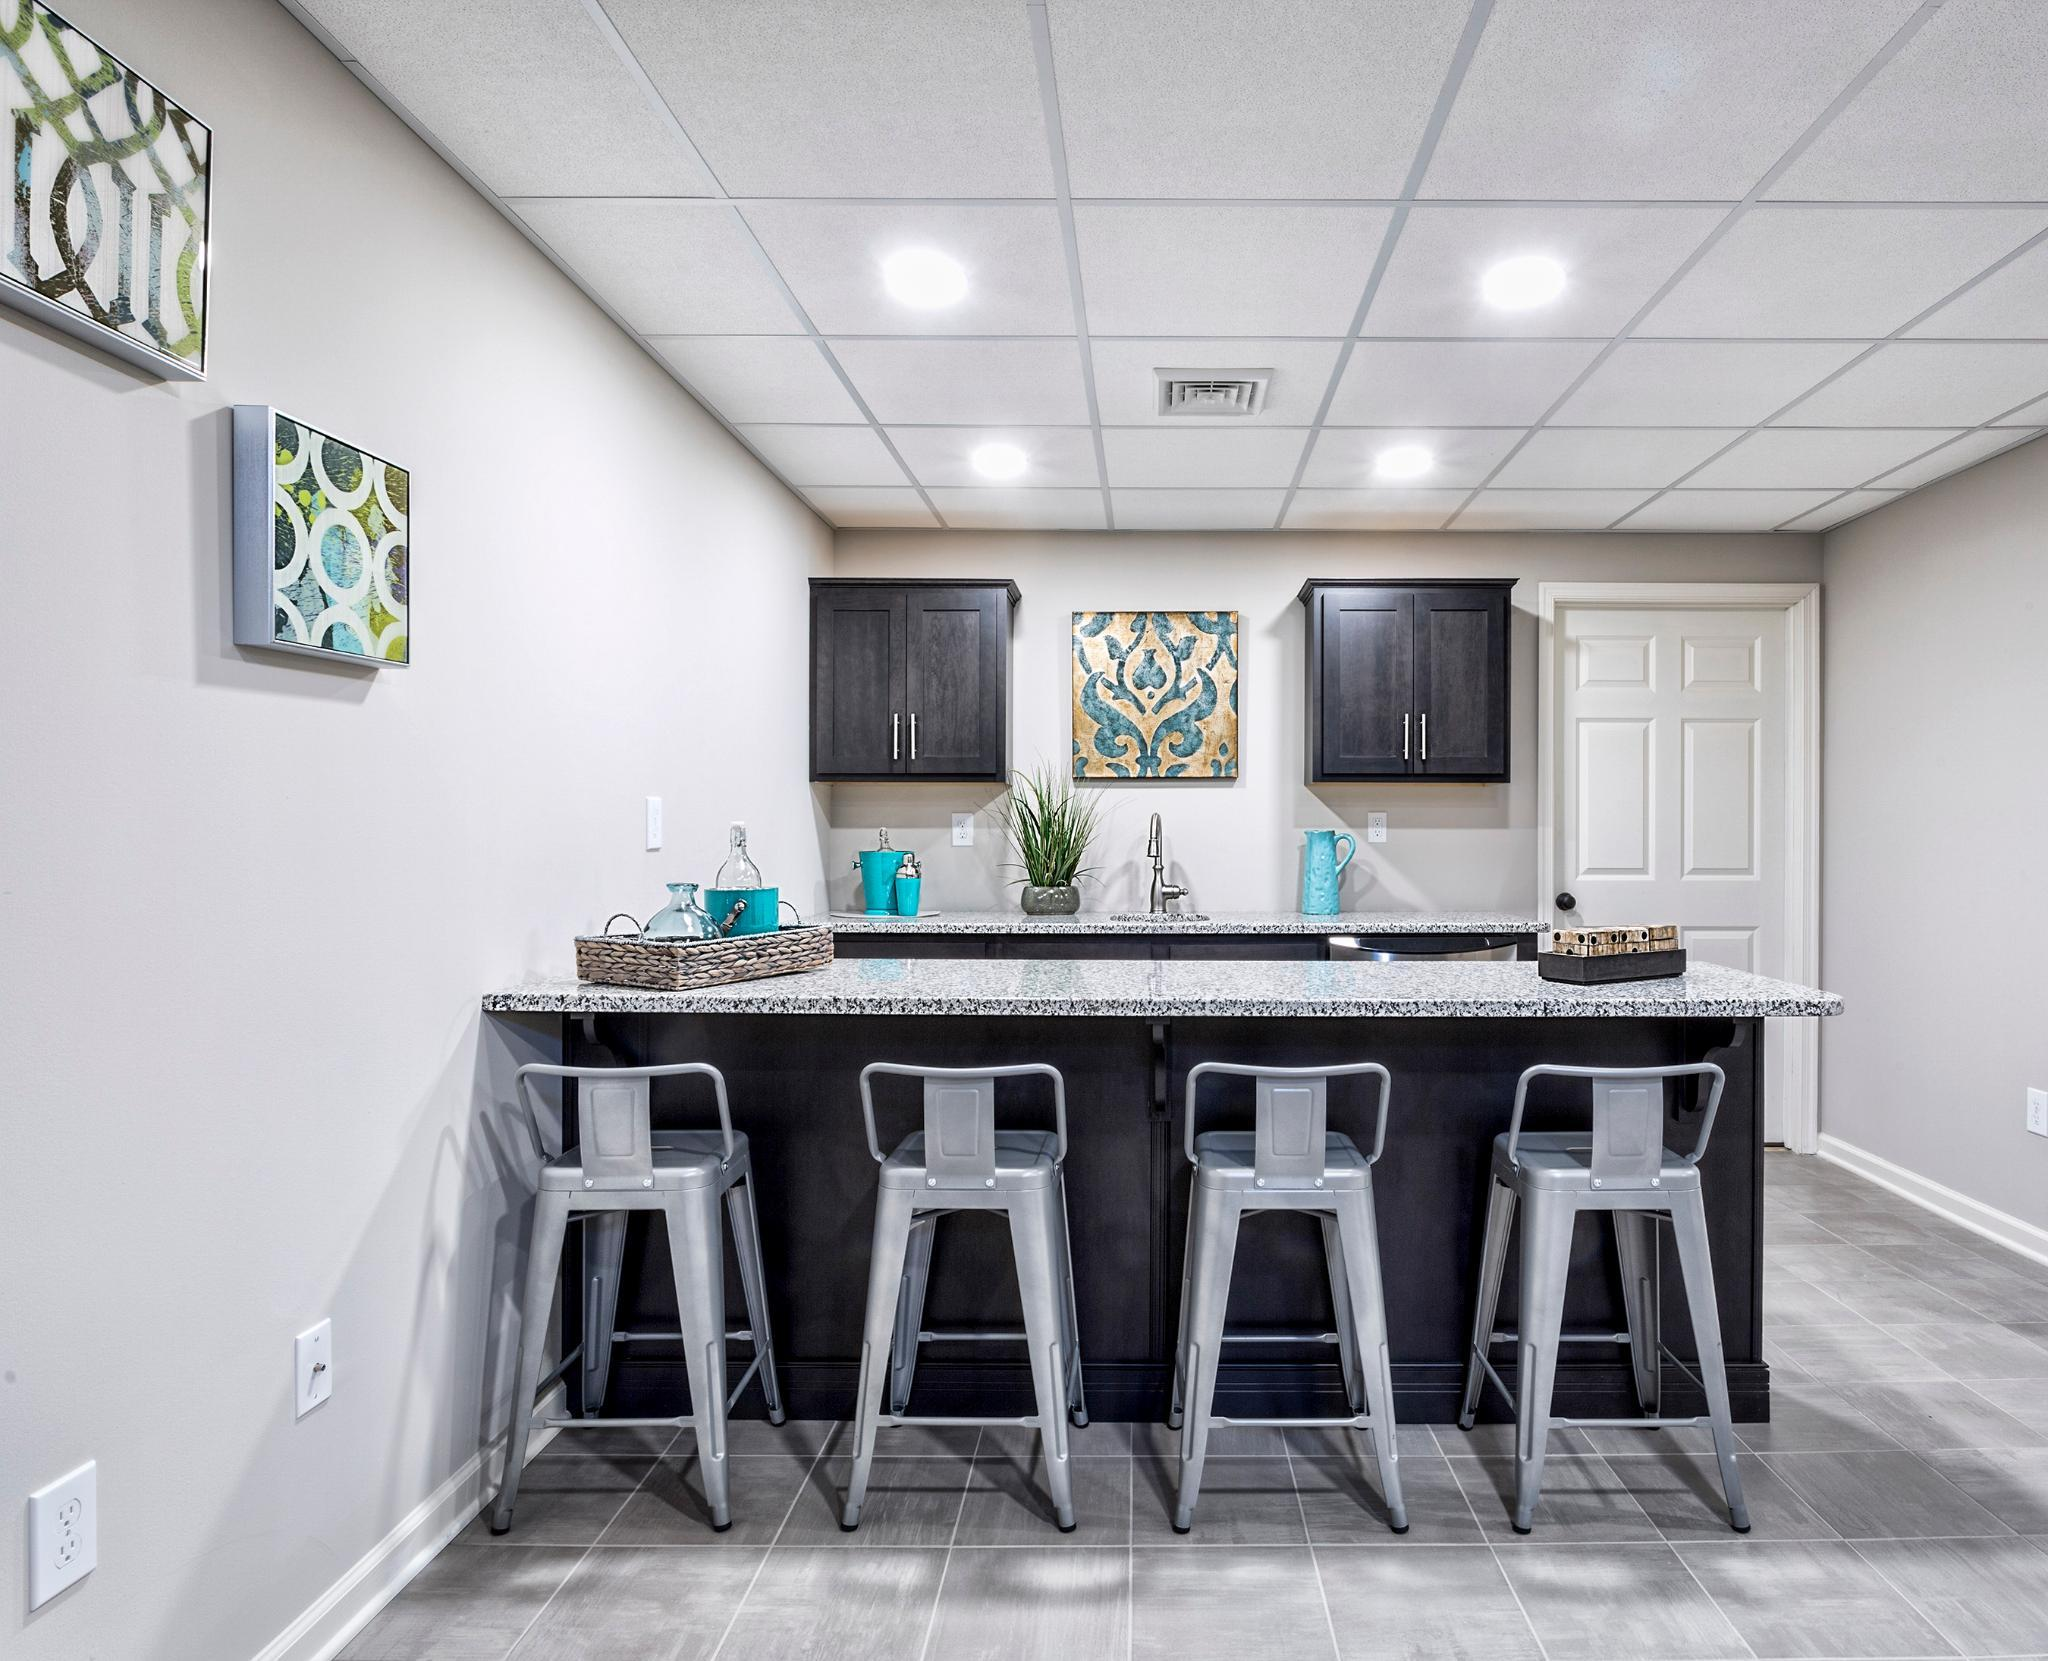 'Northwood Farms' by Tuskes Homes in Allentown-Bethlehem